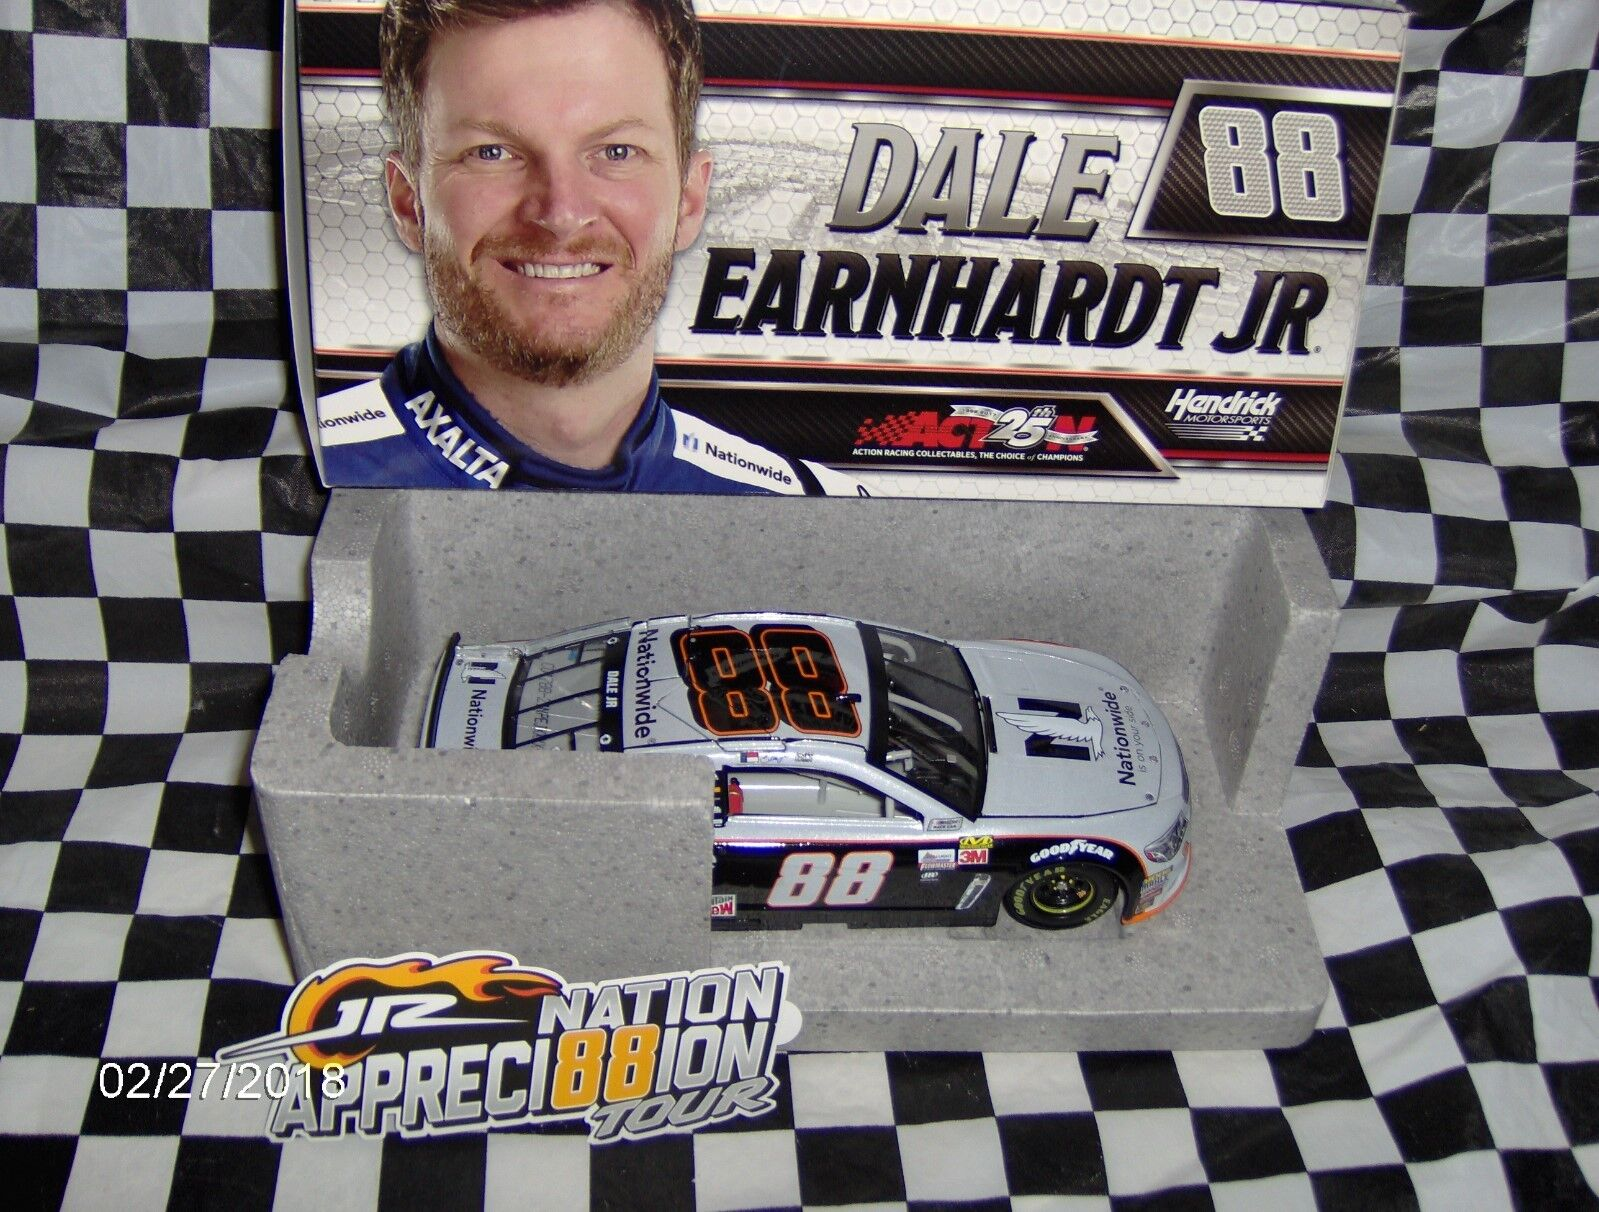 2017 Dale Earnhardt Jr.    88 Nationlarge gris Ghost 1 24th  populaire